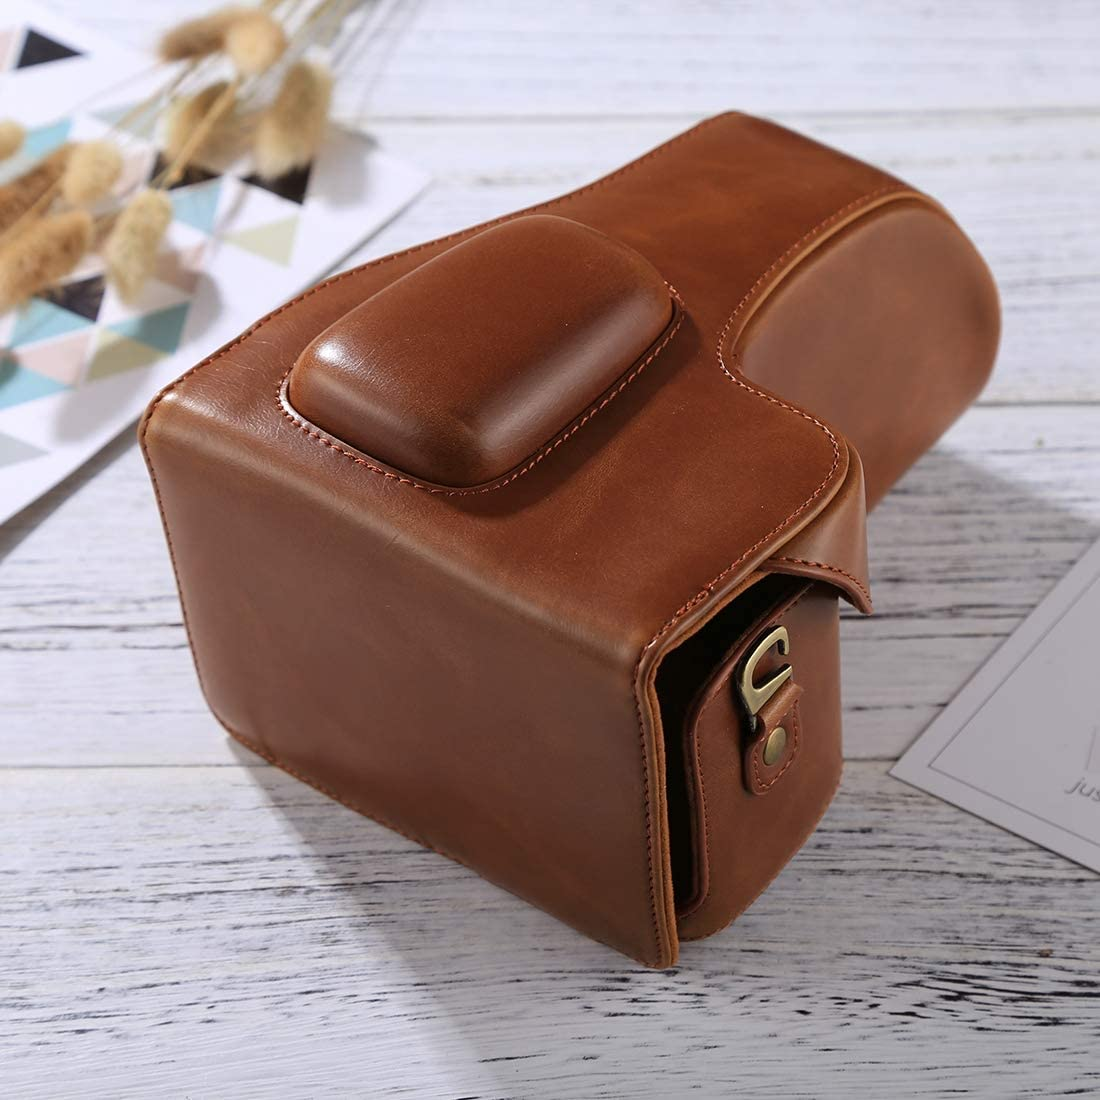 CAOMING Full Body Camera PU Leather Case Bag for Nikon D3200 // D3300 // D3400 Color : Brown 18-55mm // 18-105mm Lens Durable